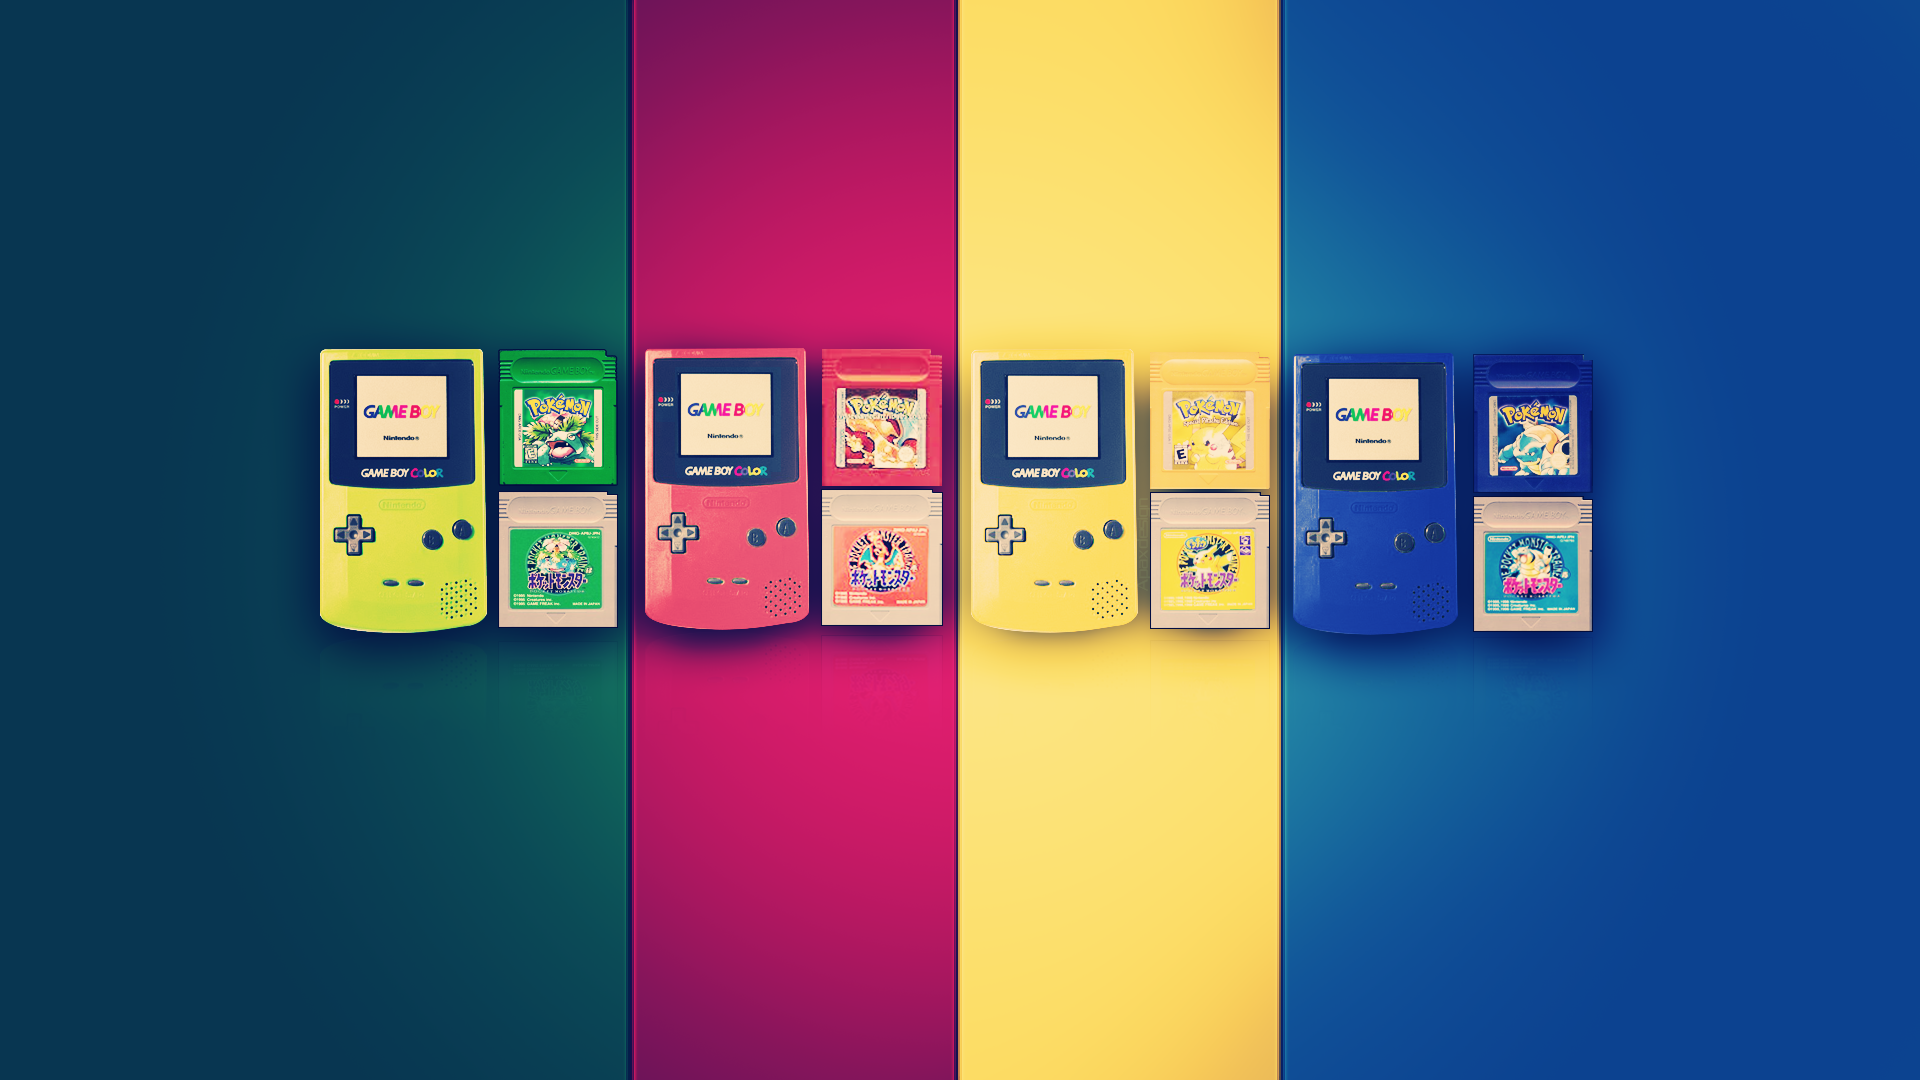 General 1920x1080 GameBoy colorful Pokemon First Generation video games GameBoy Color consoles Pokémon digital art artwork Nintendo retro games